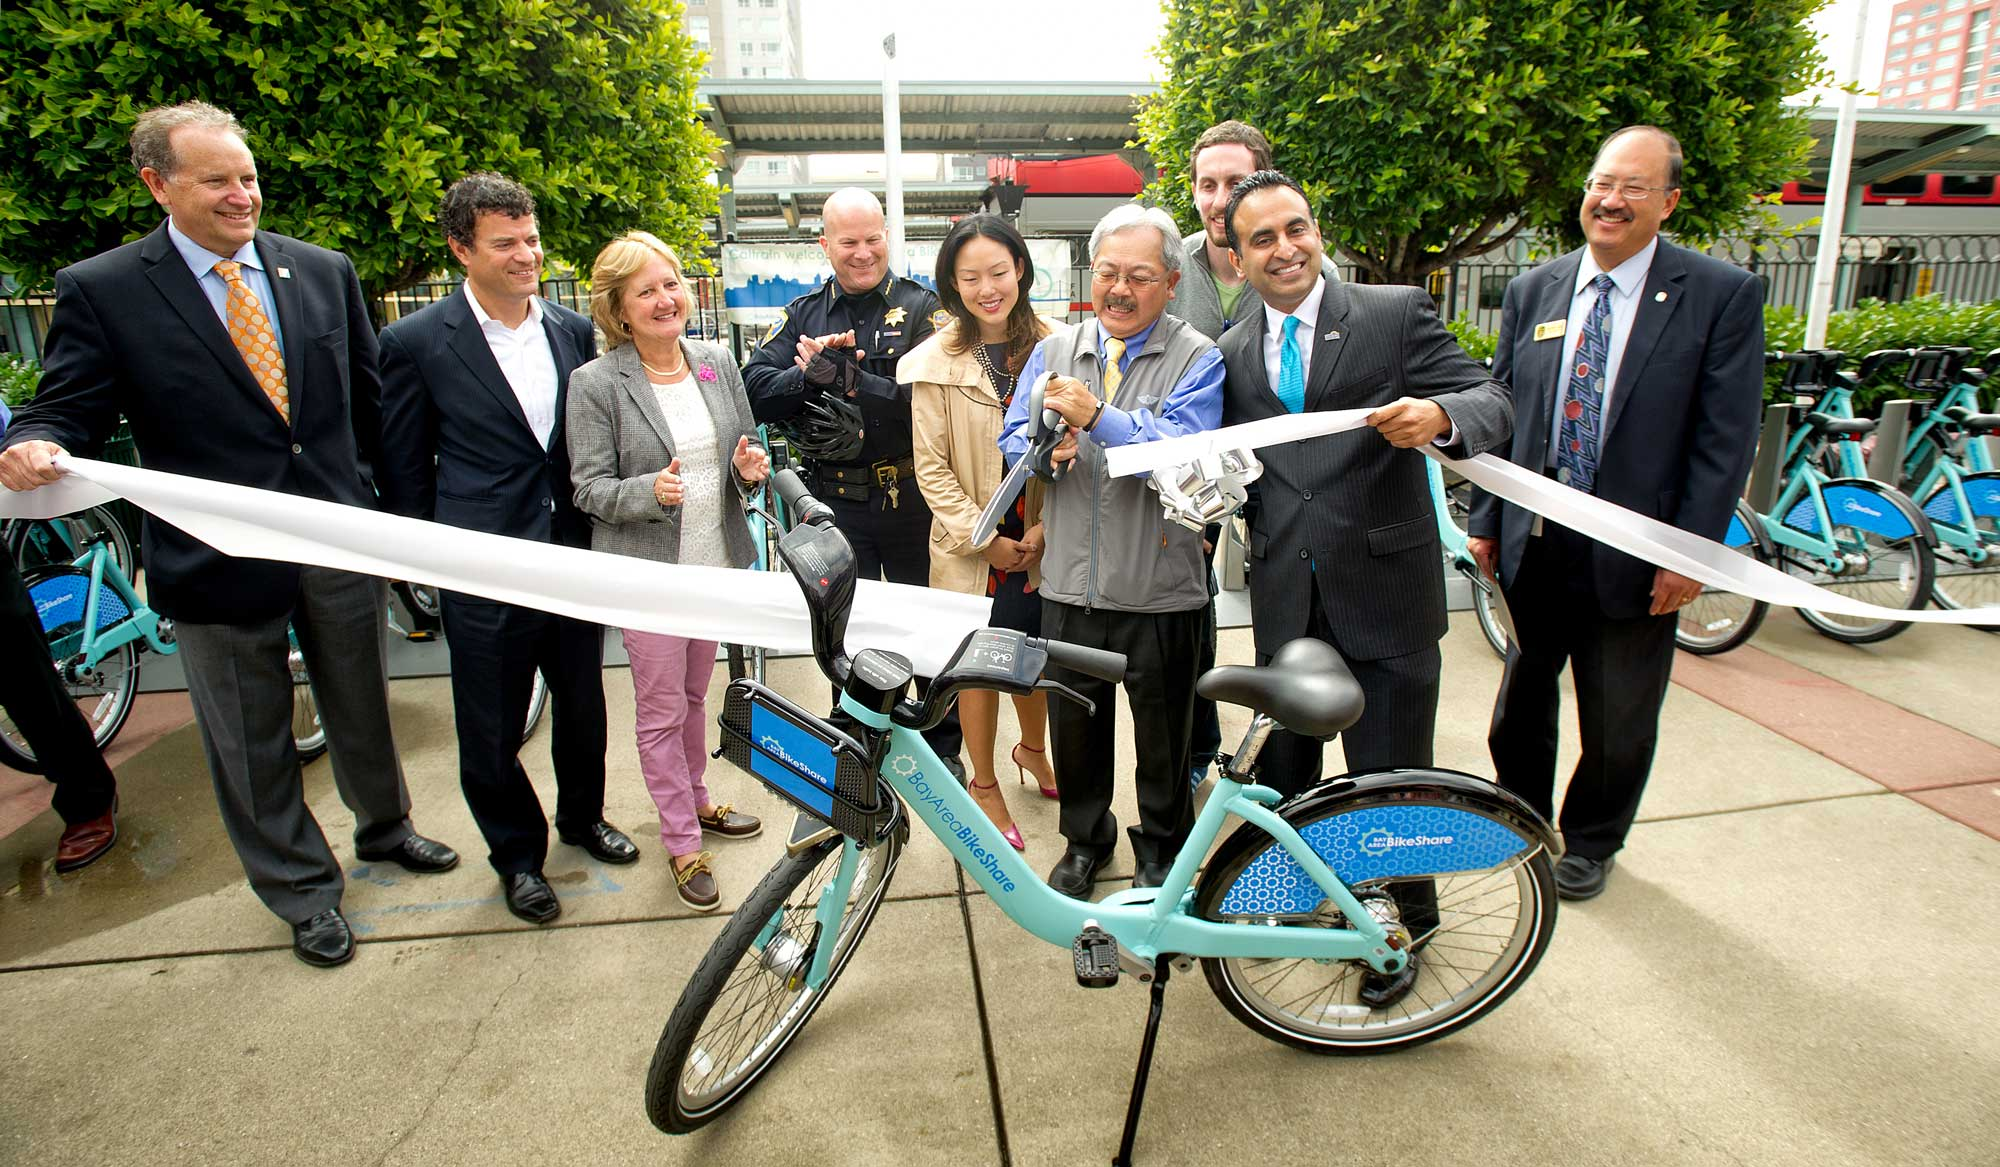 SF Mayor Ed Lee cuts the Bay Area BIke Share ribbon alongside MTC Commissioners Amy Worth and Scott Weiner.